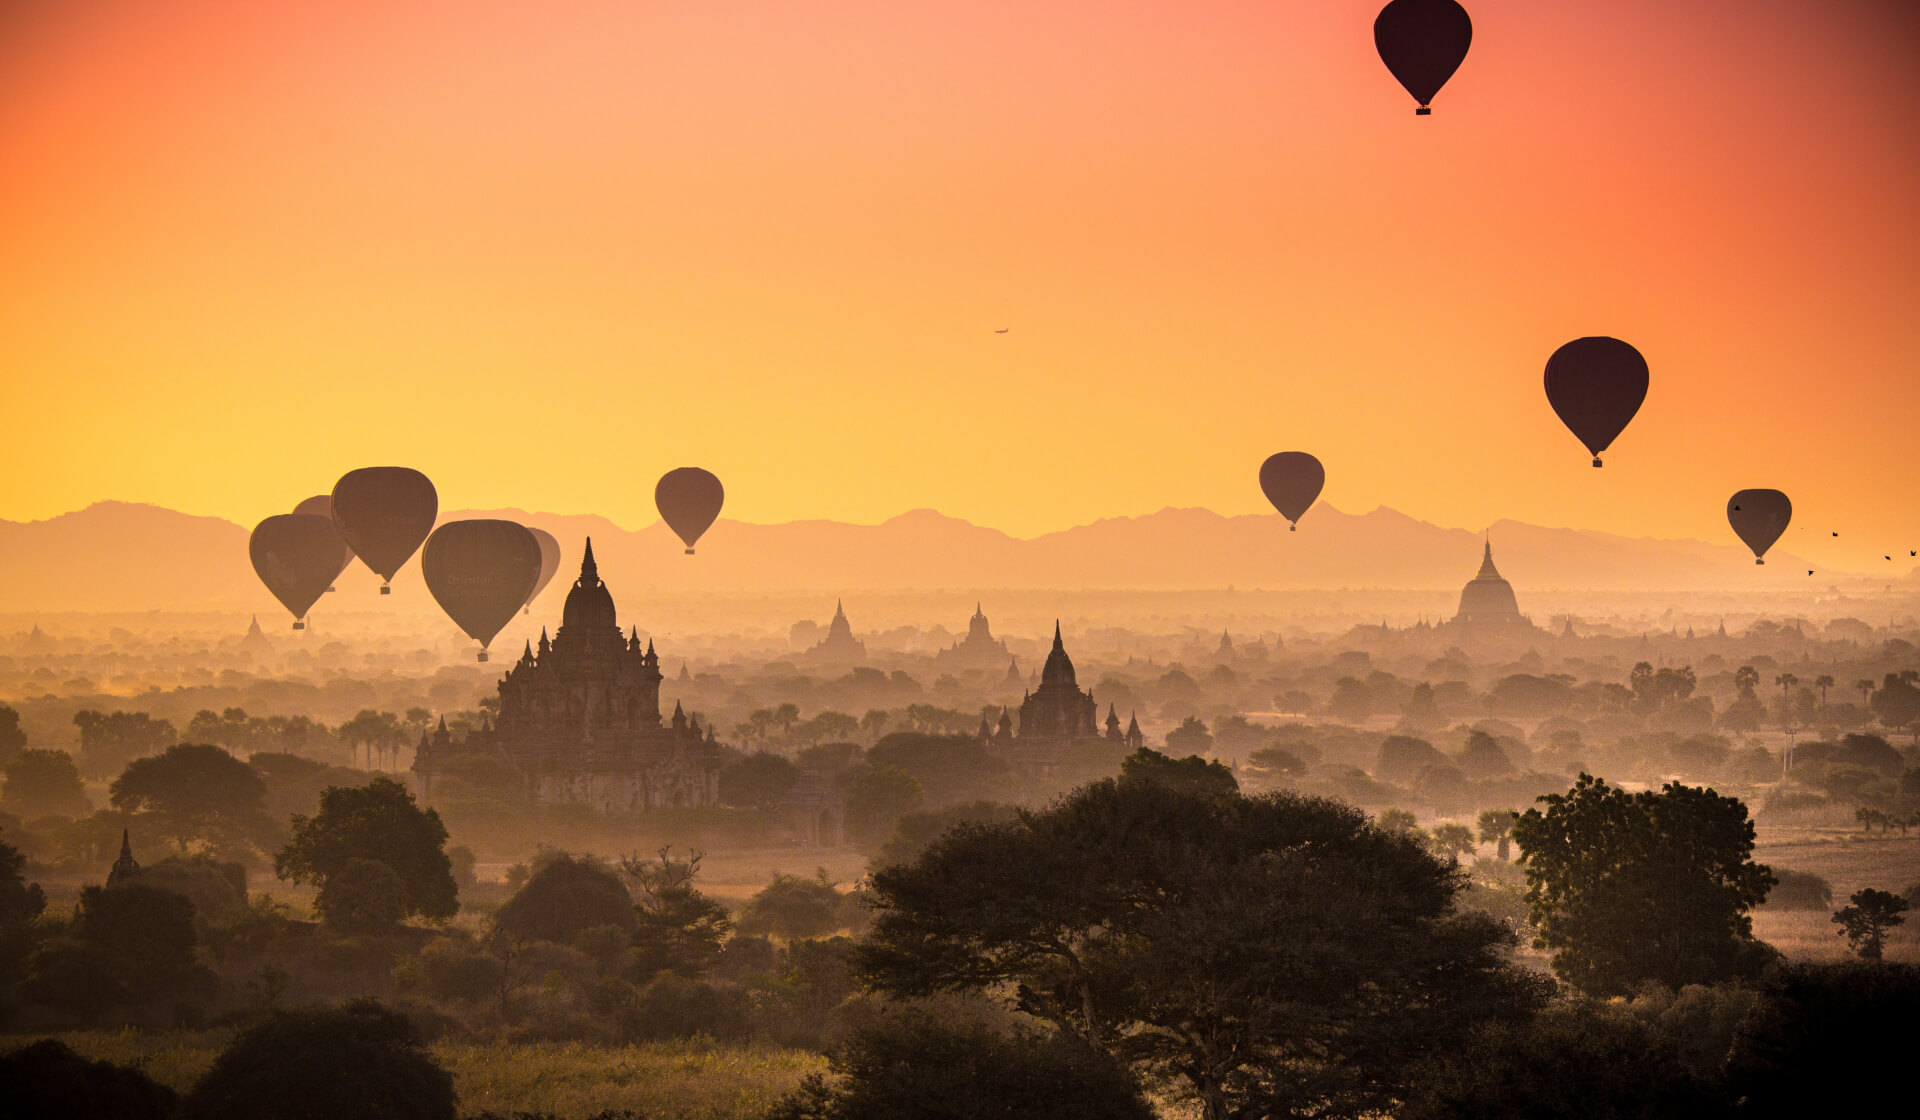 Sunrise over Bagan, Myanmar with thousands of temples and hot air balloons